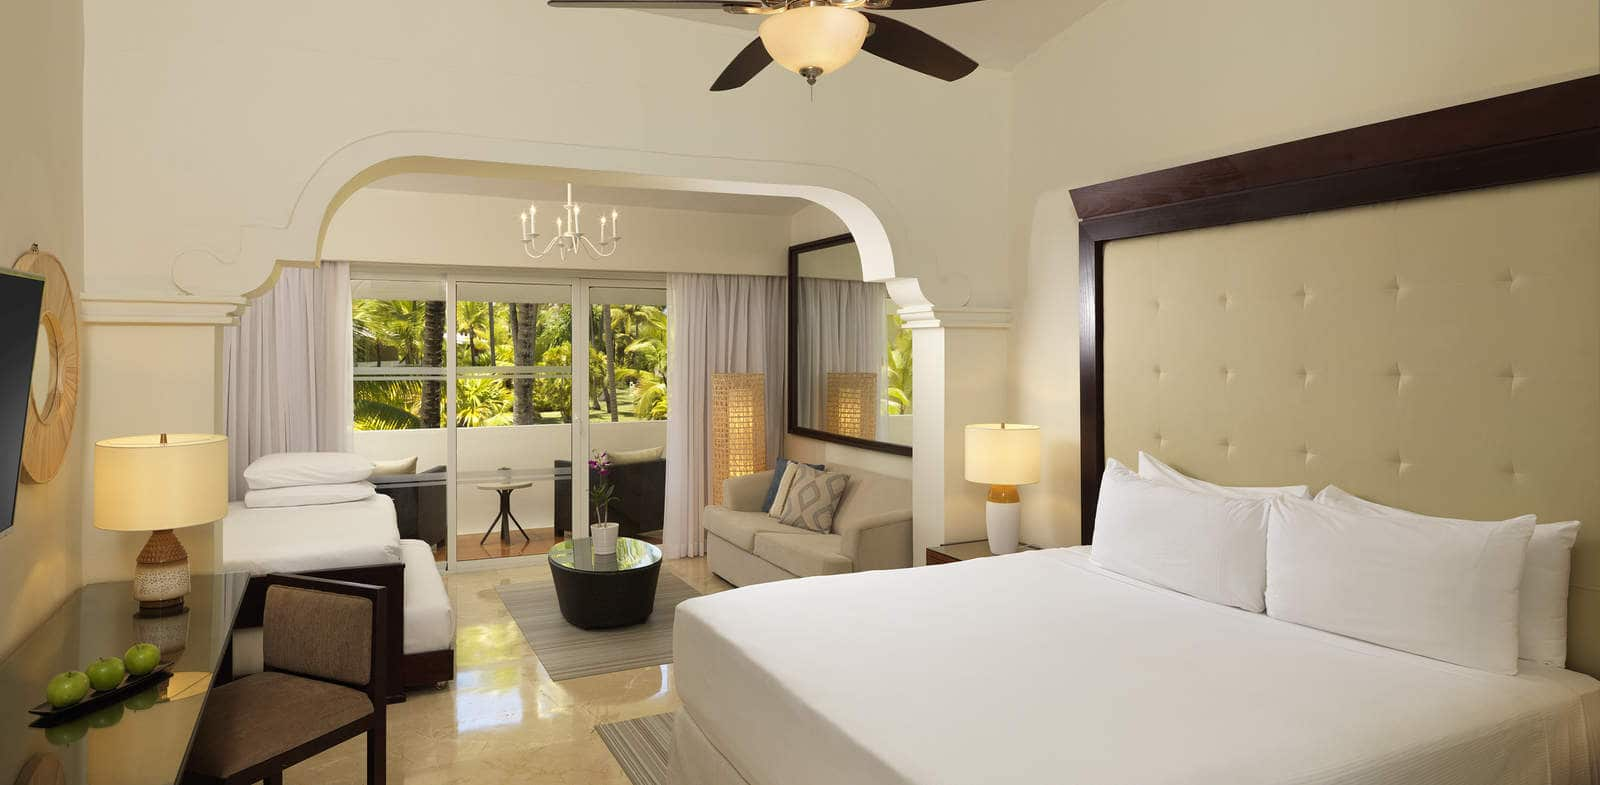 tropical decorations on bed tropical home decor ideas.htm meli   caribe beach resort family room beachside  meli   caribe beach resort family room